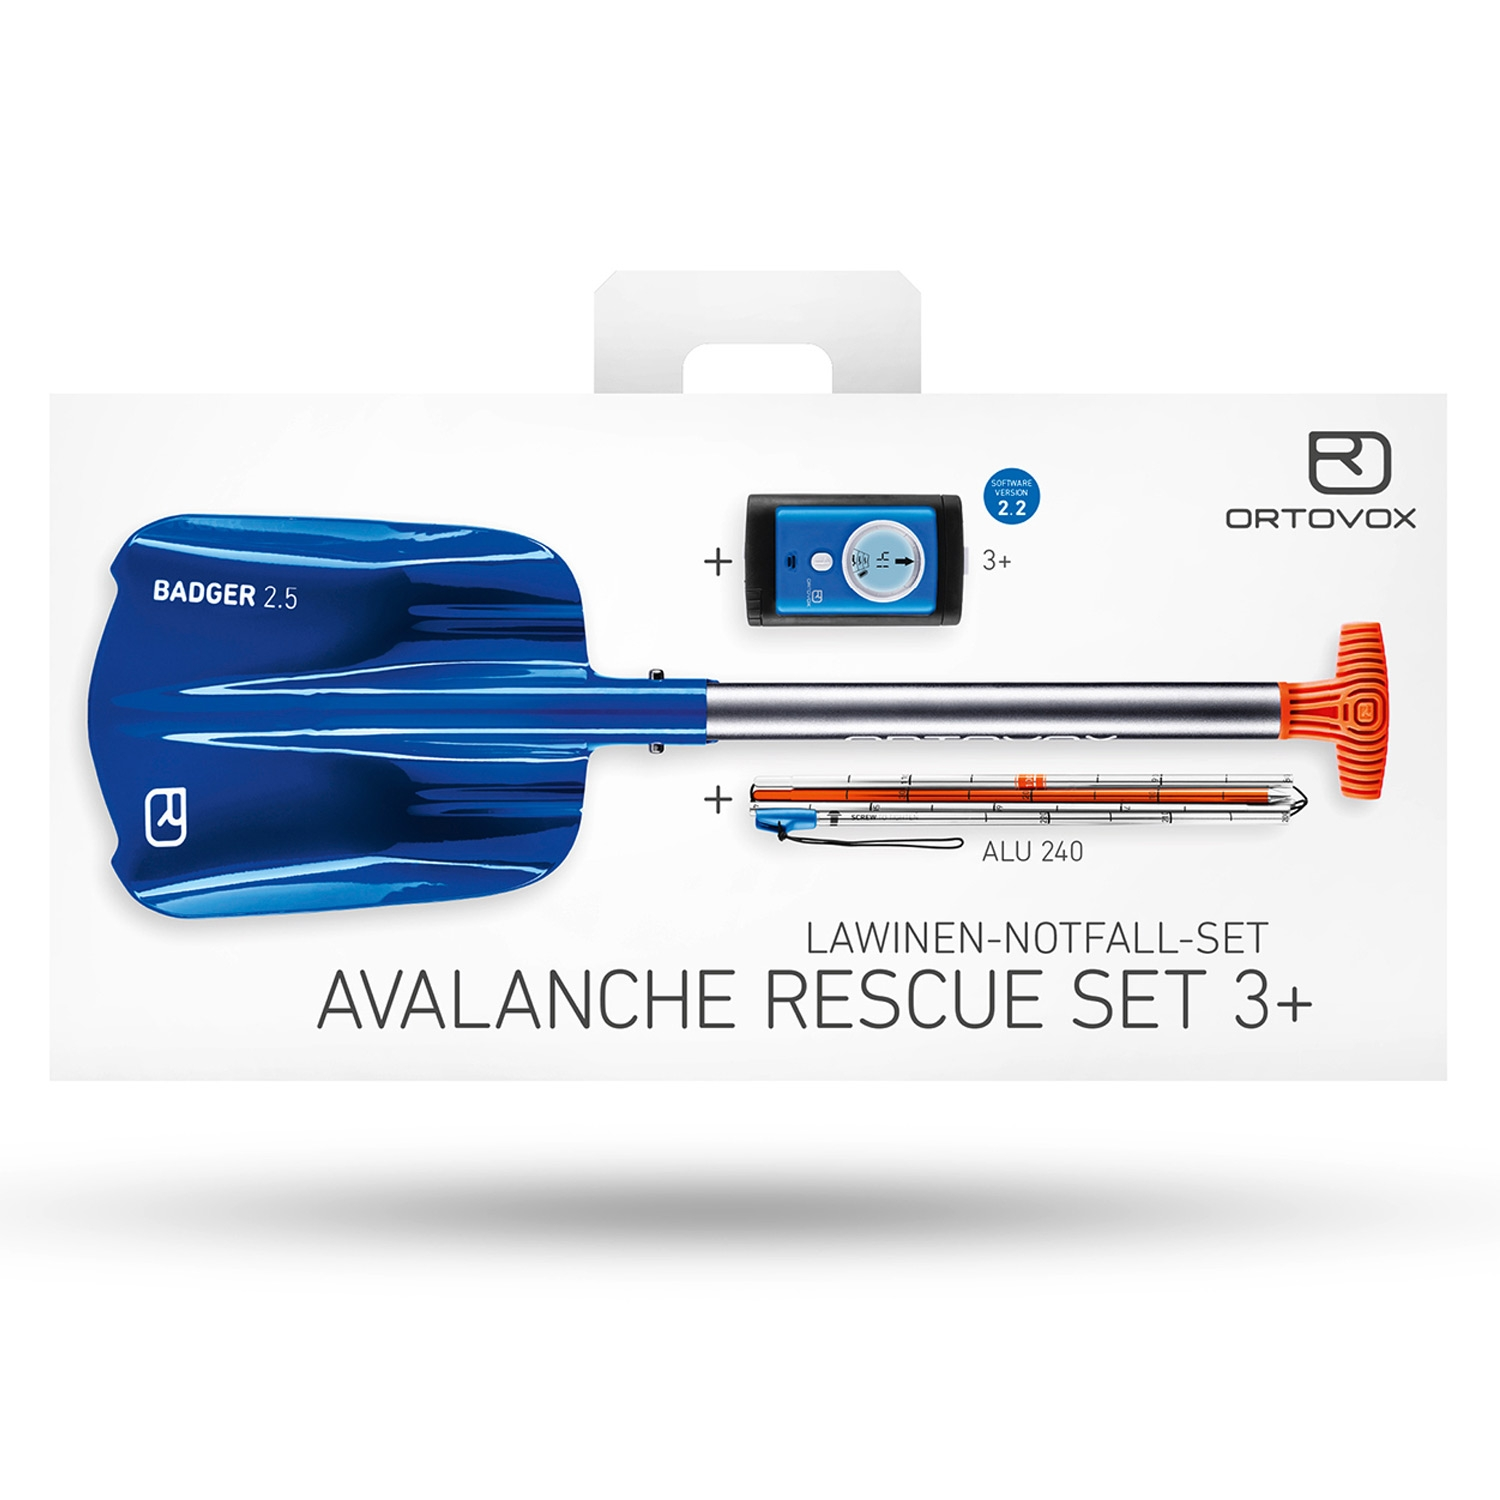 Ortovox Avalanche Rescue Kit 3 2021